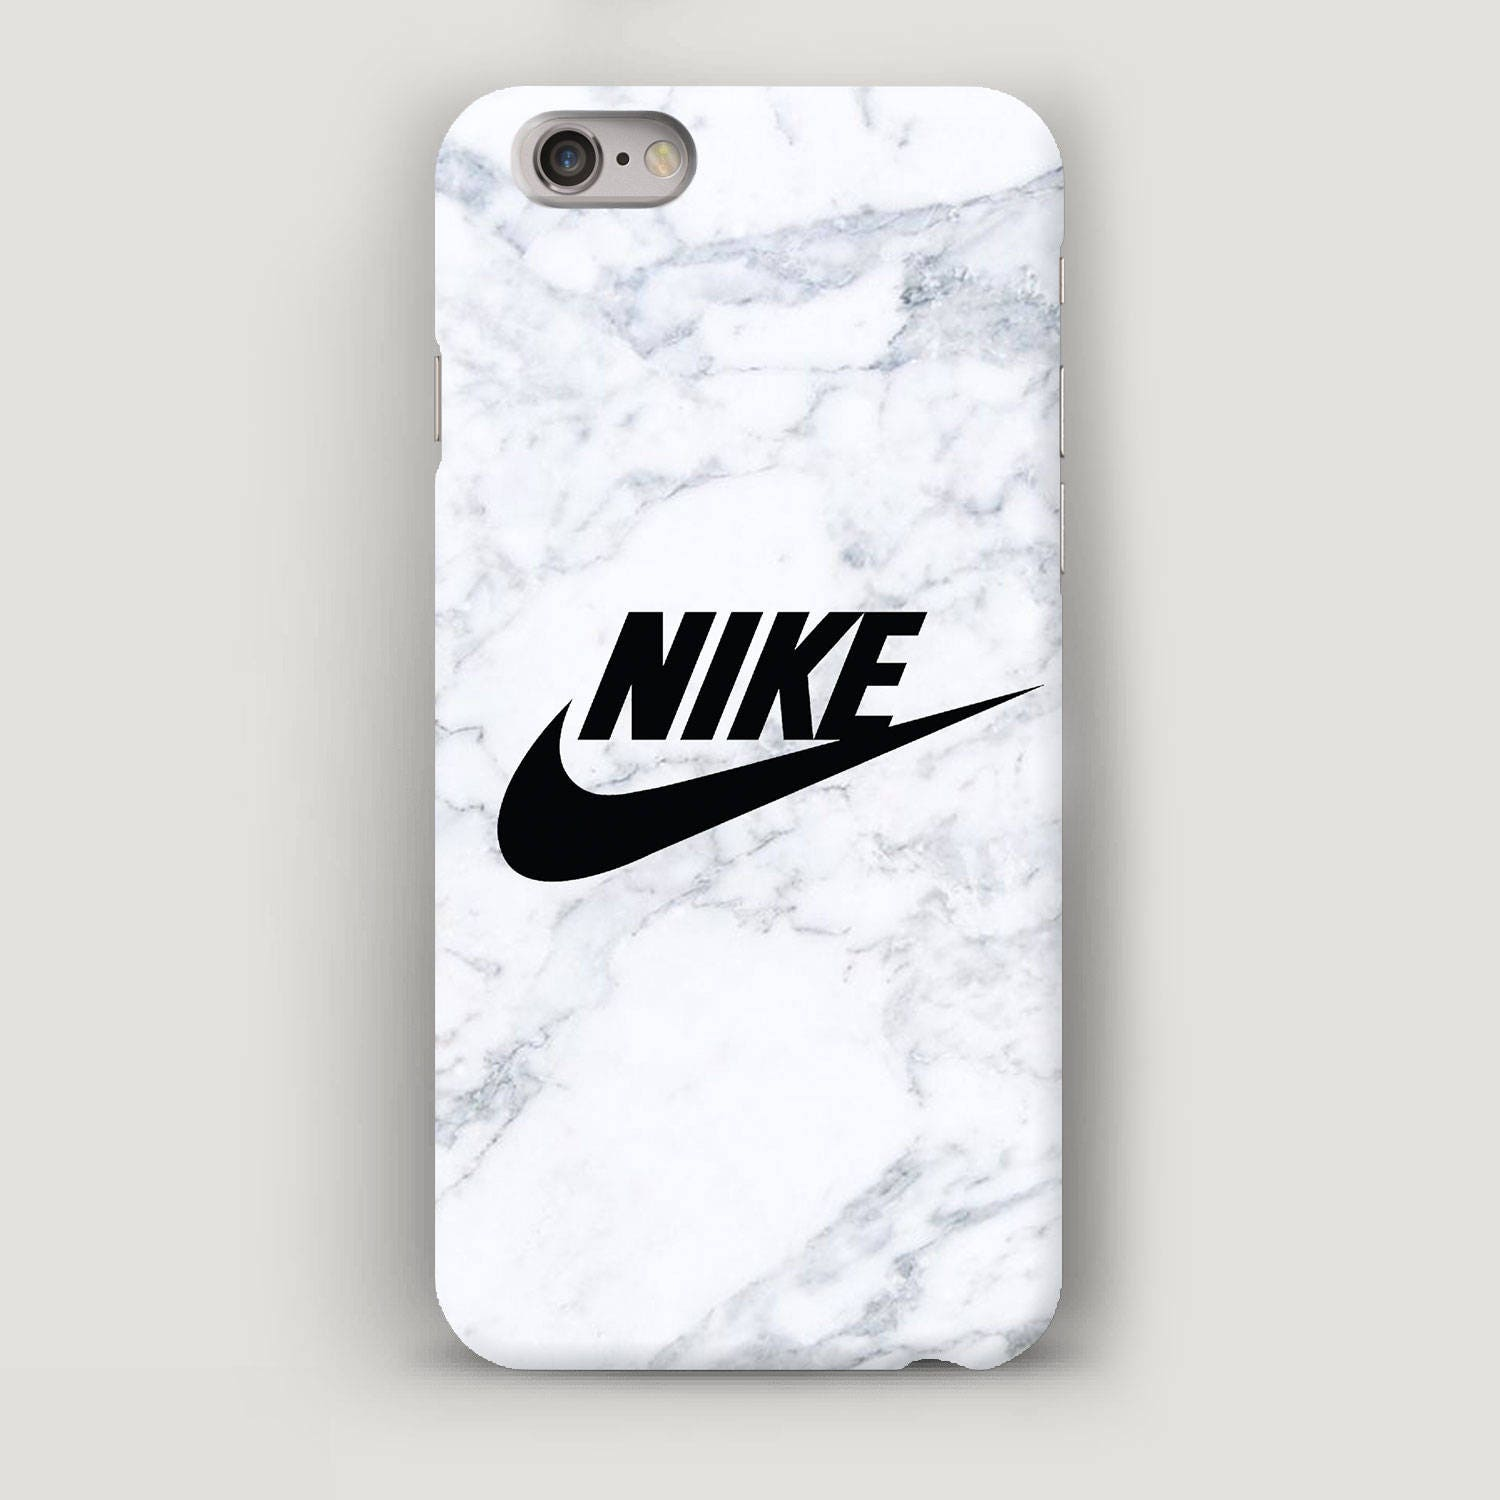 wei marmor handy tasche nike iphone h lle fall von apple. Black Bedroom Furniture Sets. Home Design Ideas